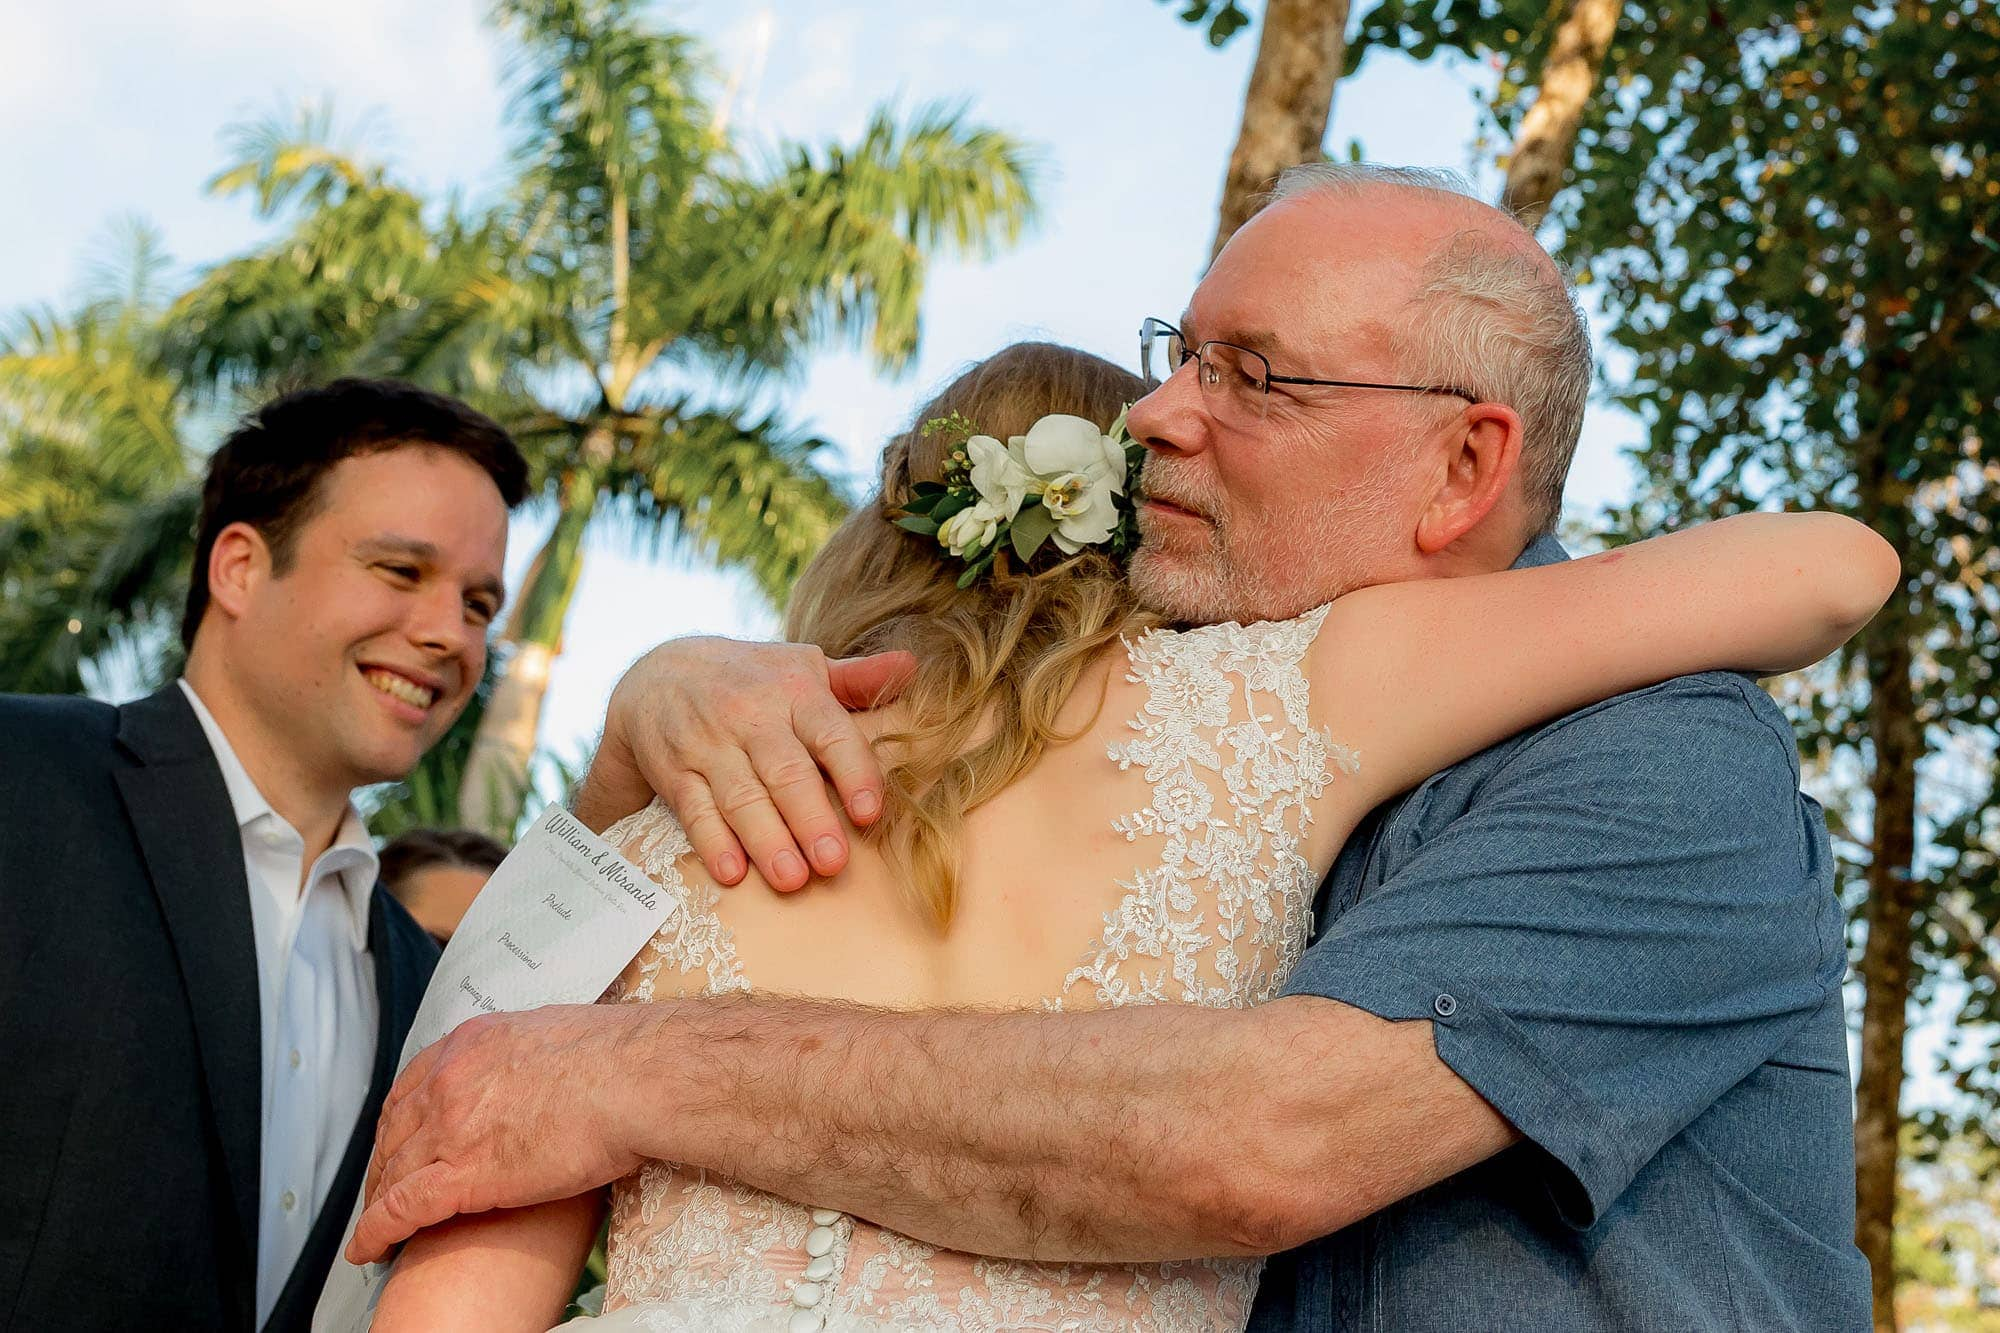 The bride hugging her dad with the groom smiling in the background